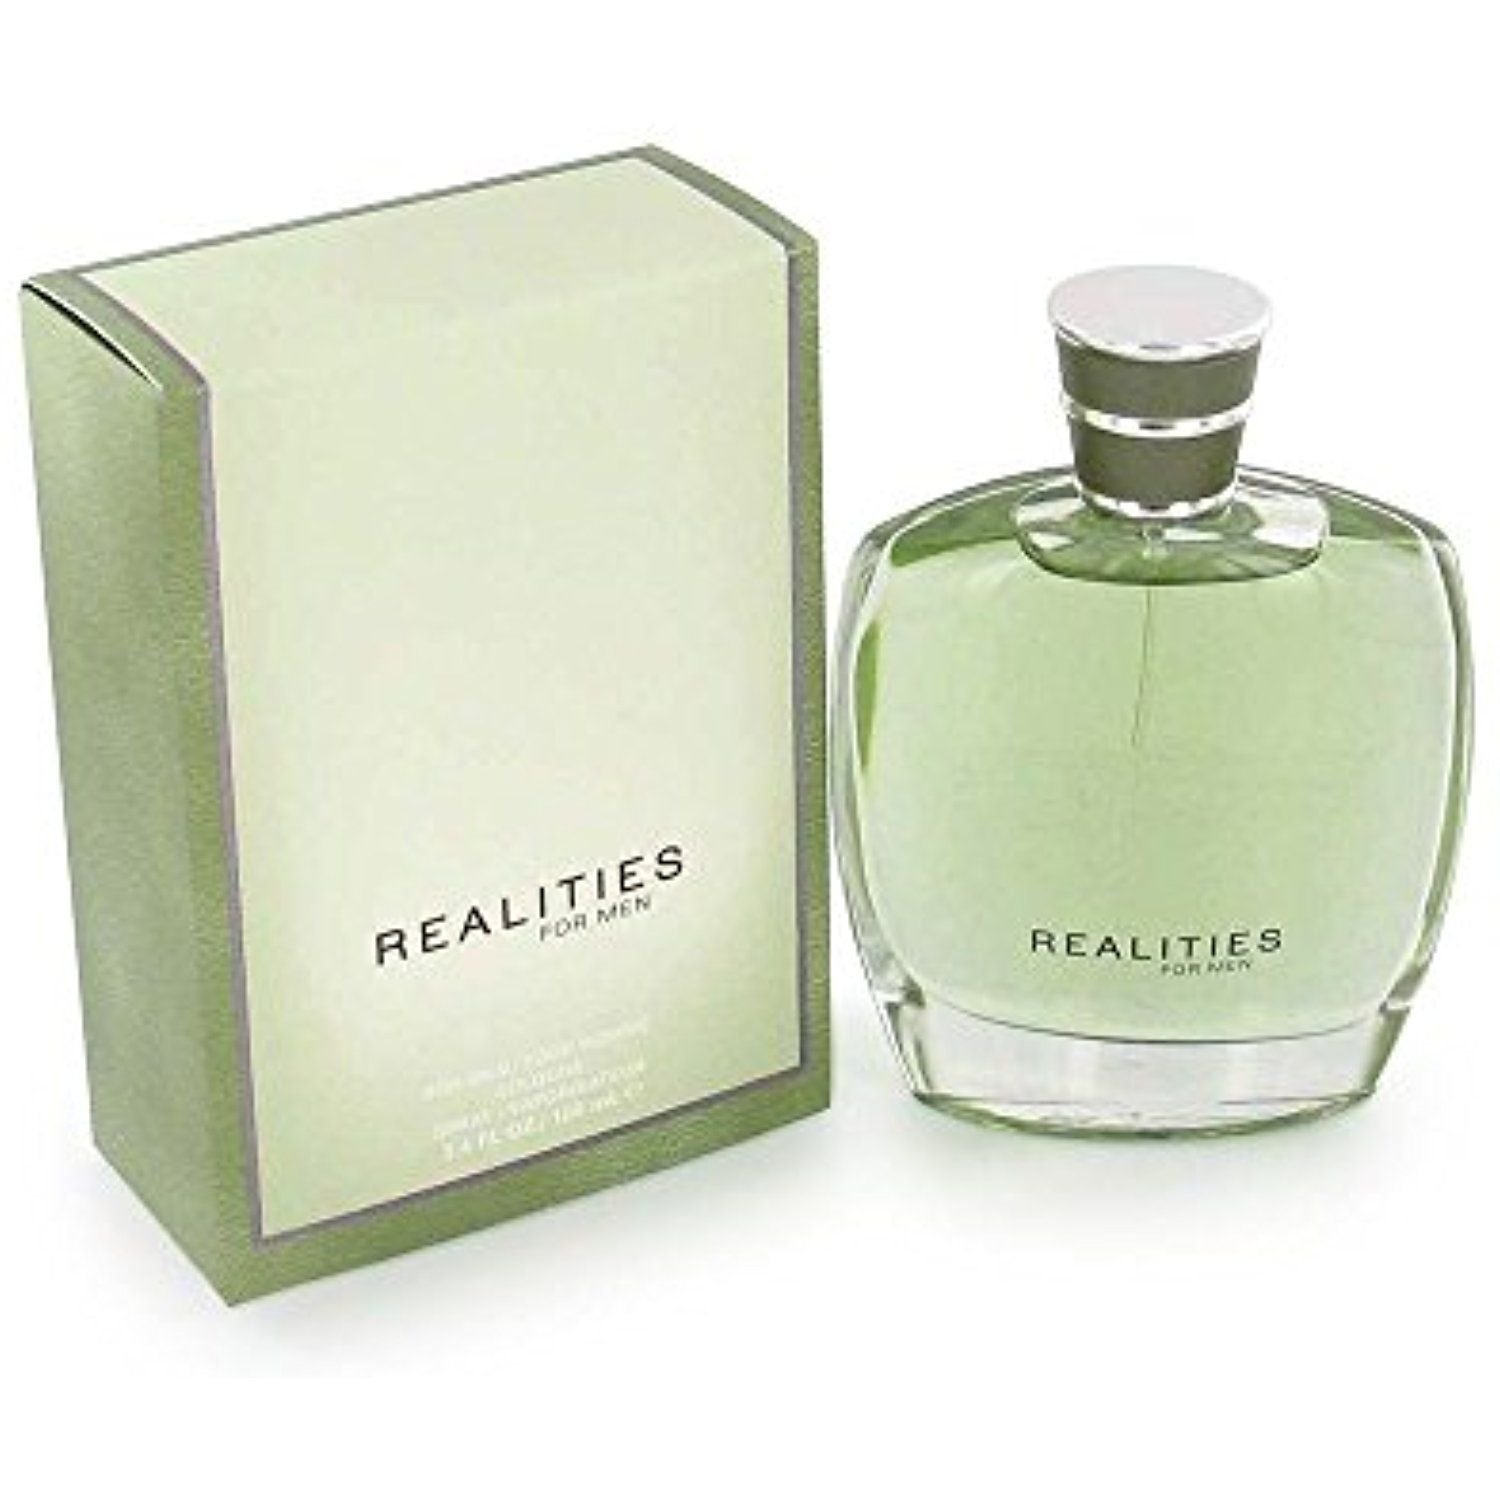 Realities by realities cosmetics for men cologne spray 3